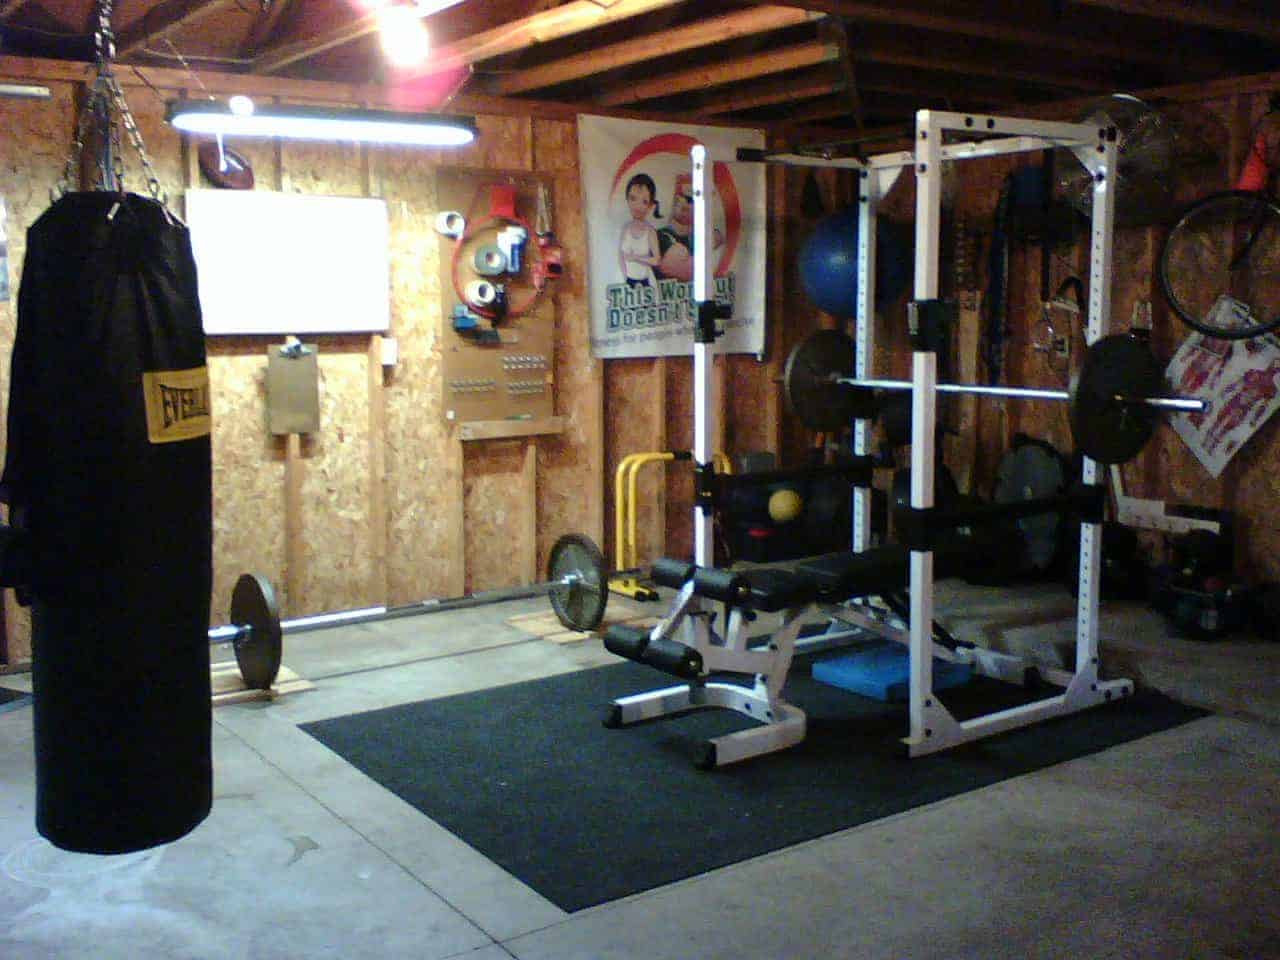 Benefits of home fitness equipment why i own home gym for How to create a home gym